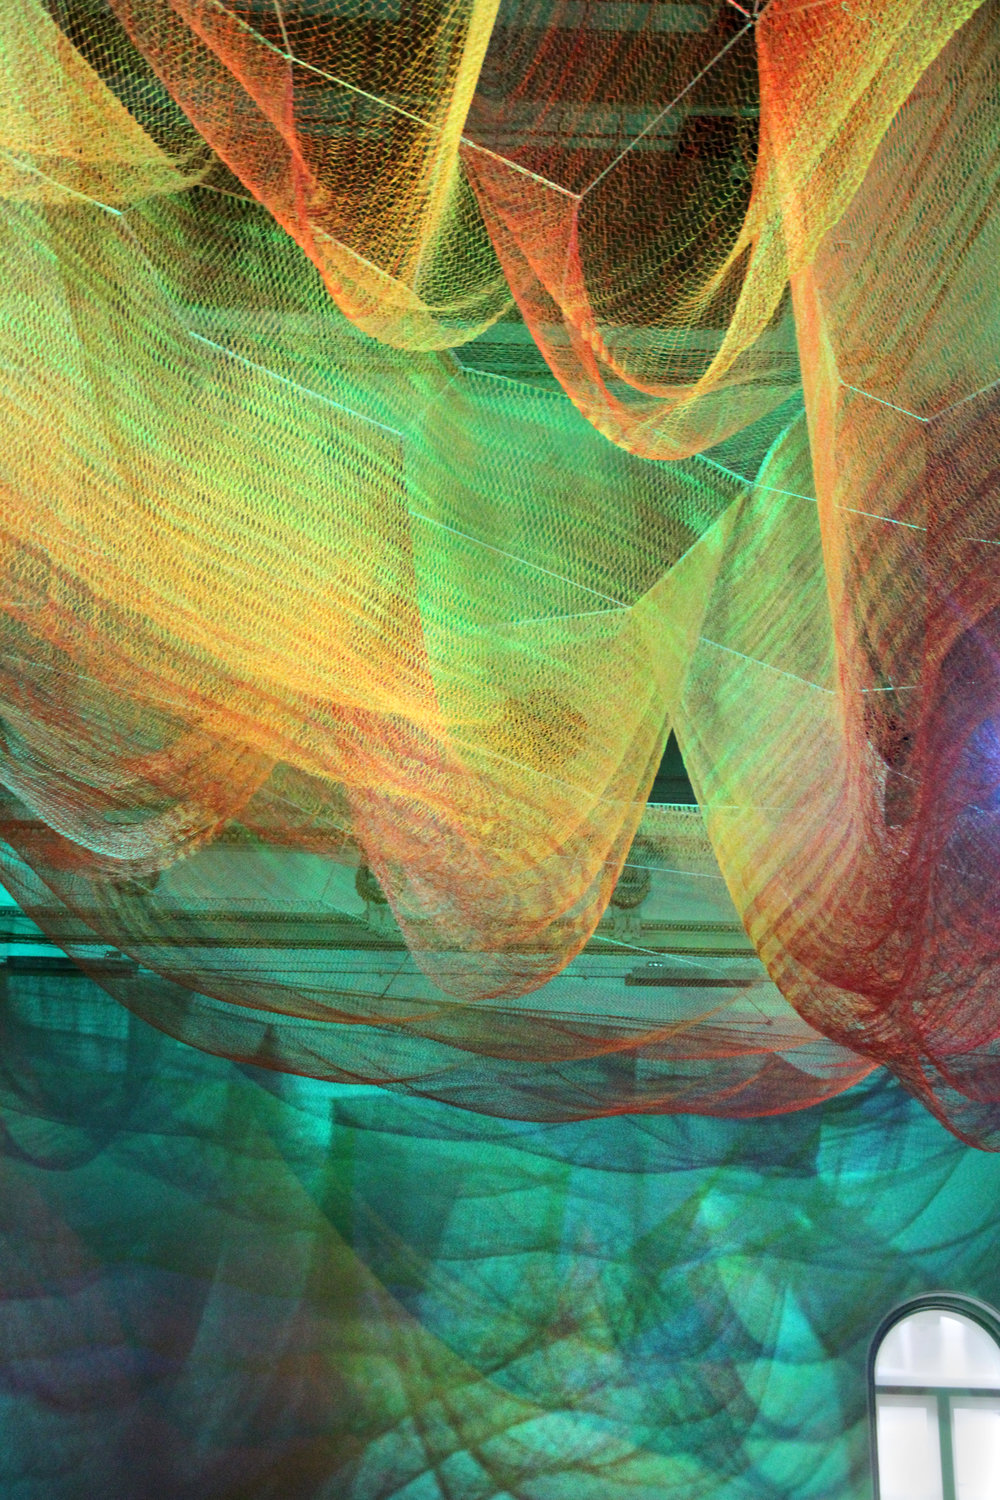 DC_Echelman_PhotoBrian Stacy_273_e.jpg